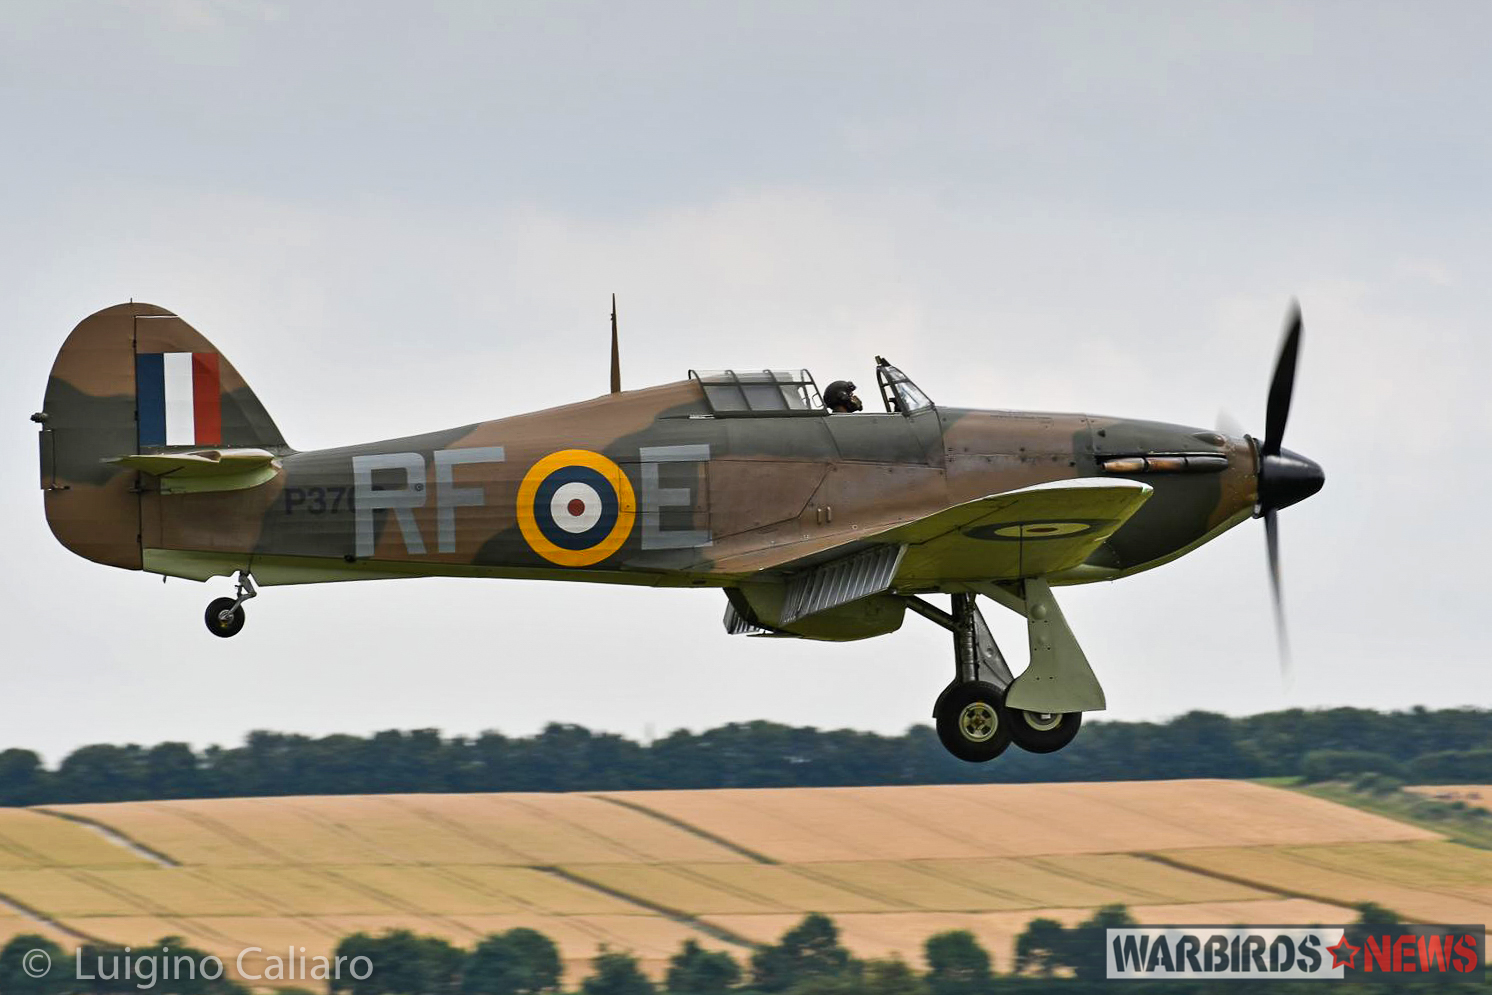 The Historic Aircraft Collection's Hawker Hurricane XII P3700, marked as a Battle of Britain era Mk.I of 303 (Polish) Squadron, comes in for a landing. (photo by Luigino Caliaro)